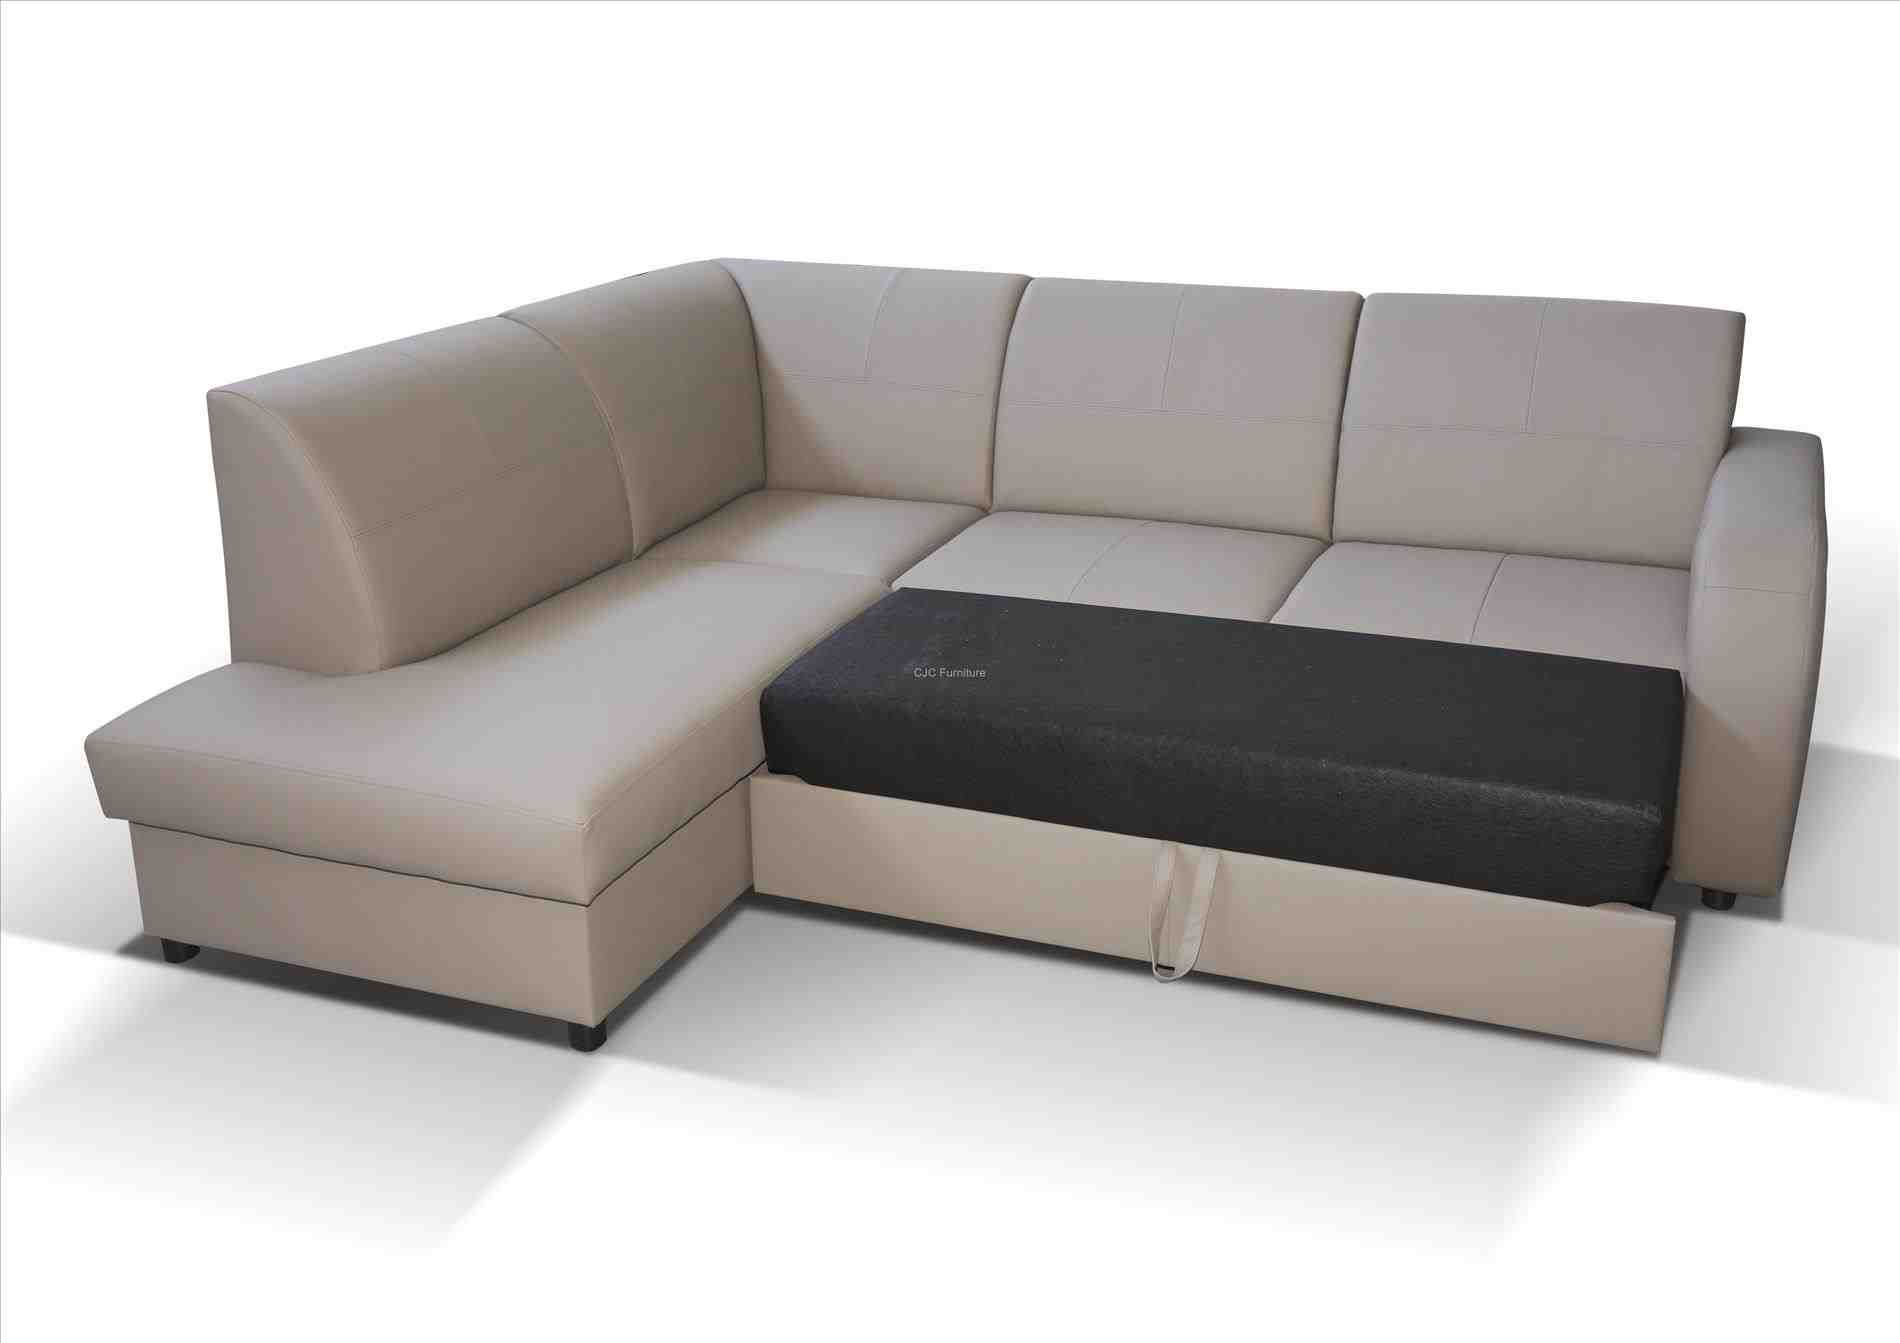 Sofa Finance For Poikilothermia Info On Sofas Bad Credit Corner With Furniture No